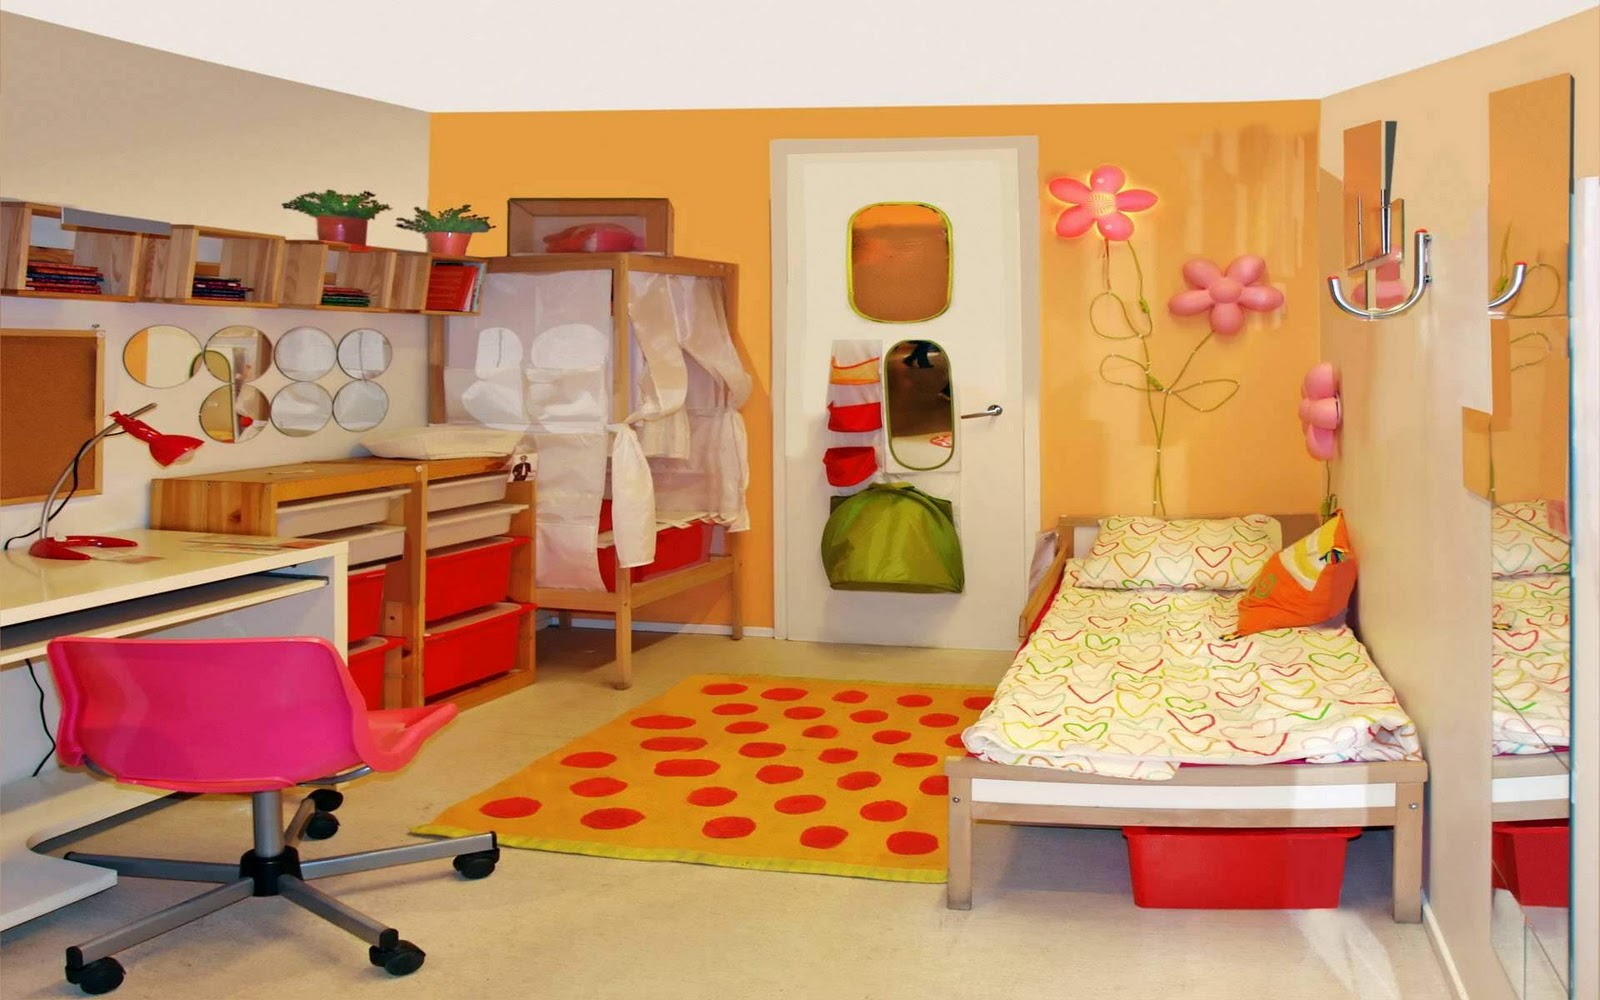 Wallpaper wallpaper ideas for kids room - Beautiful rooms images ...